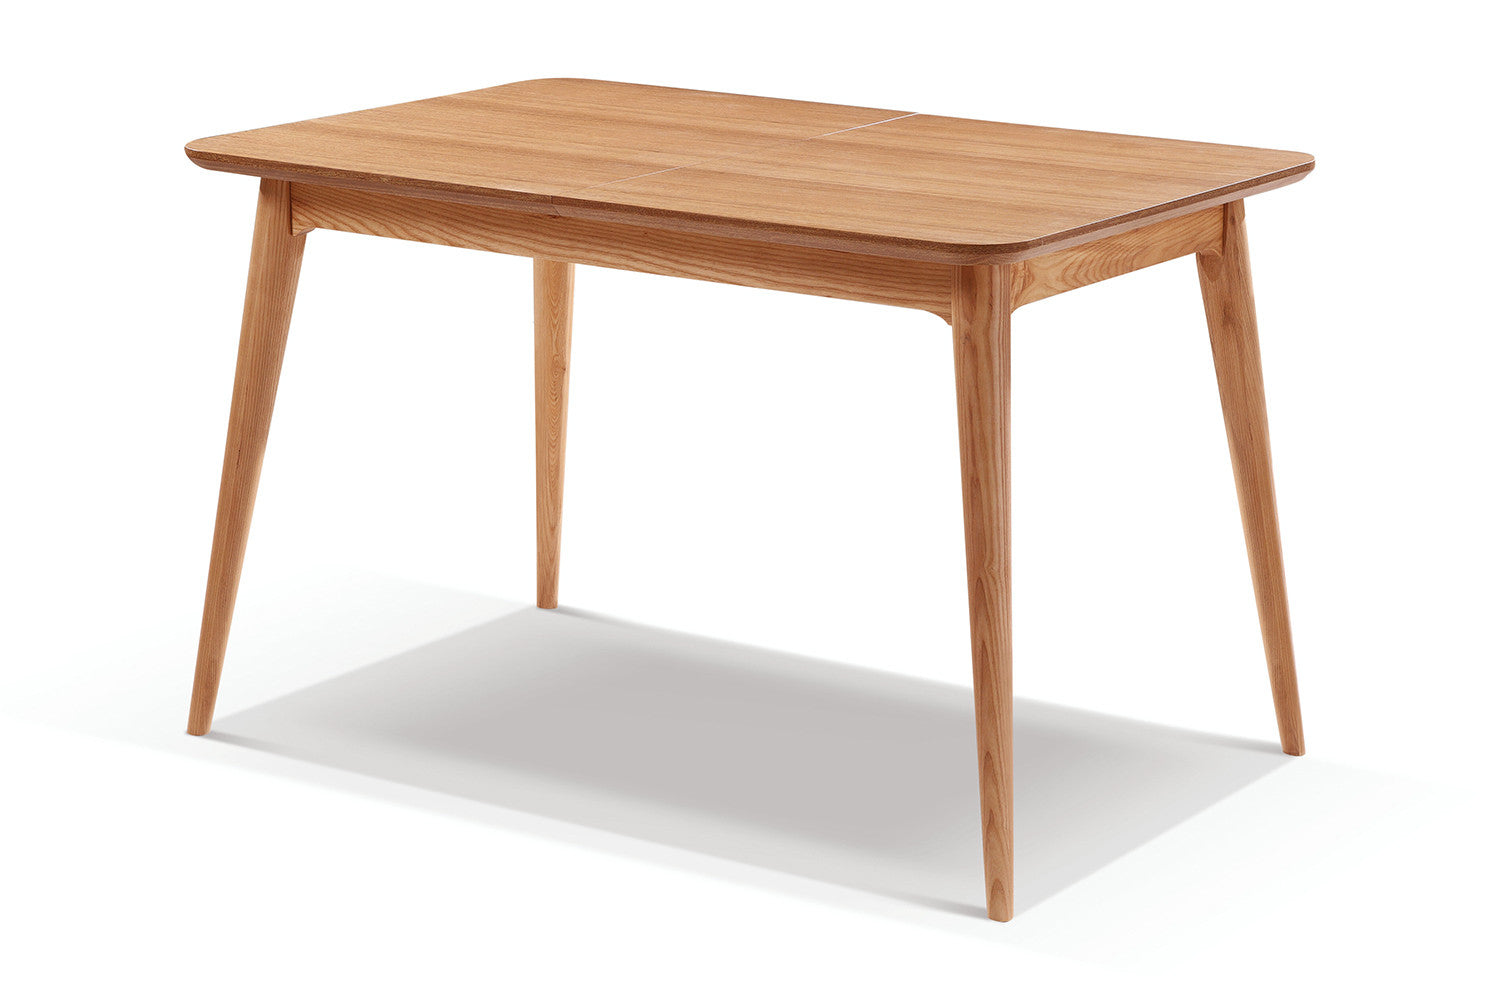 Table de salle manger extensible en bois adda dewarens for Table extensible en largeur